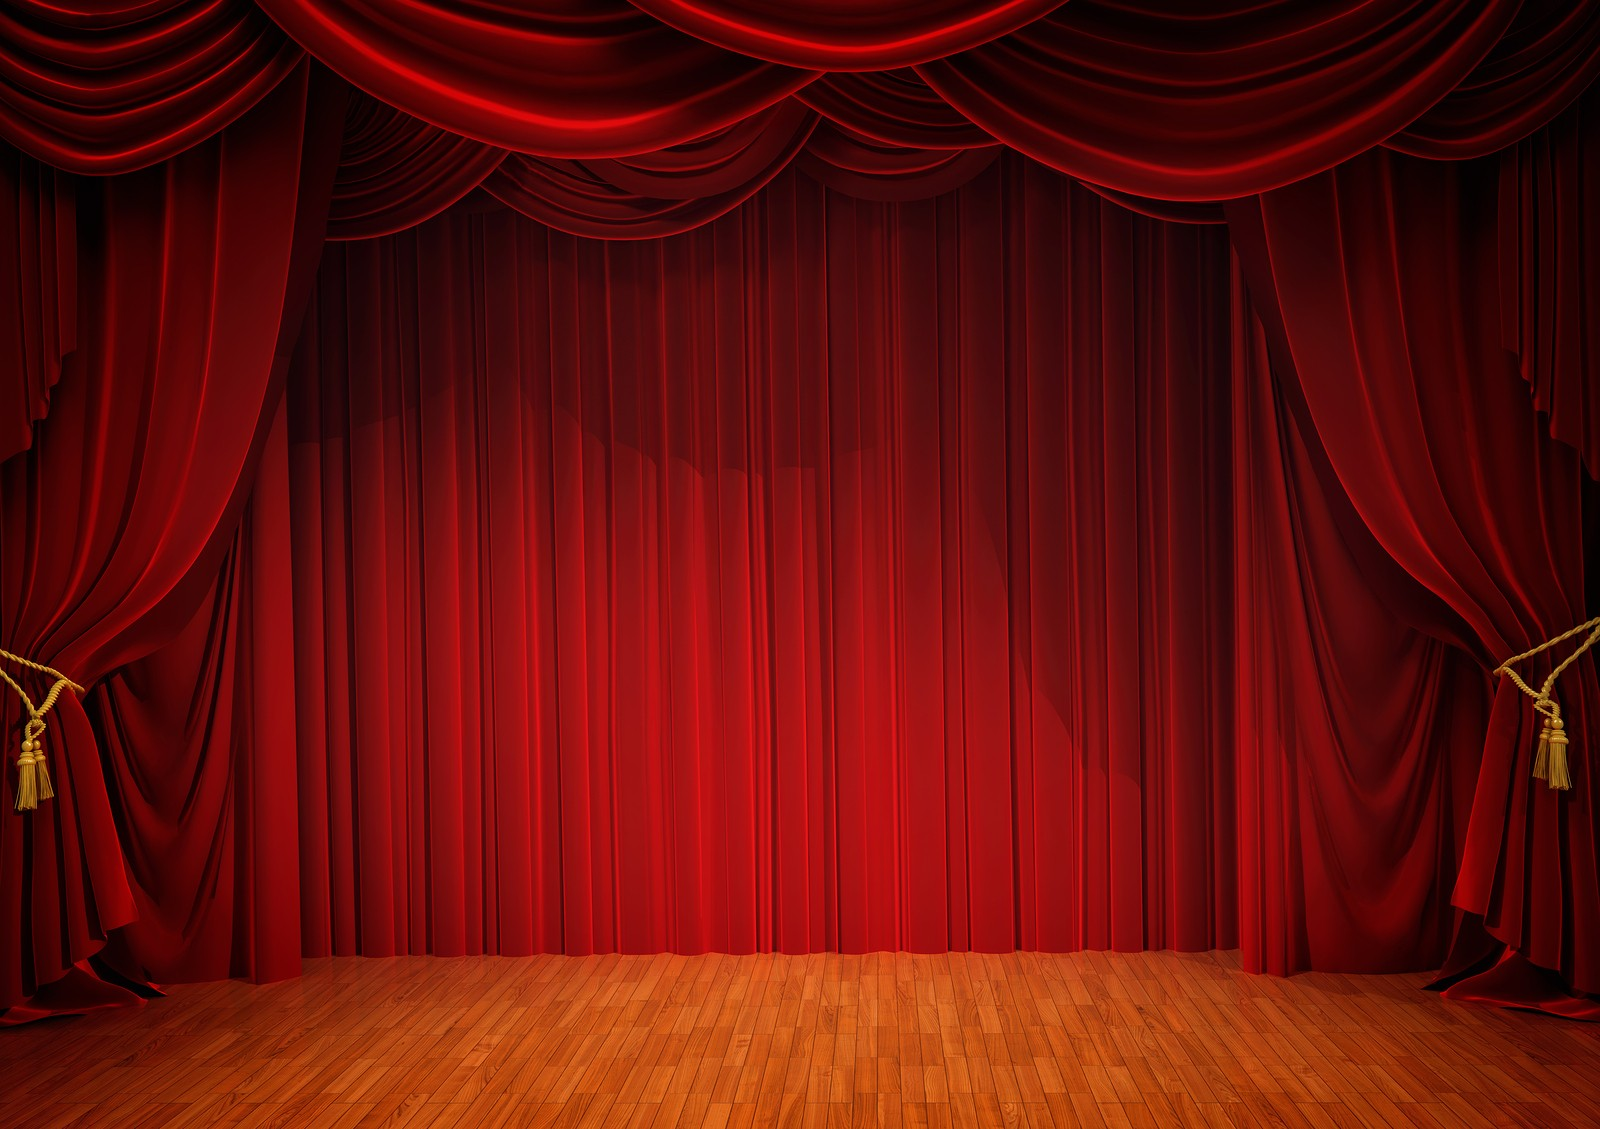 Red stage curtains - Stage Curtains Closed Real Red Stage Curtain Click To Enlarge Bigstock Stage With Red Curtain